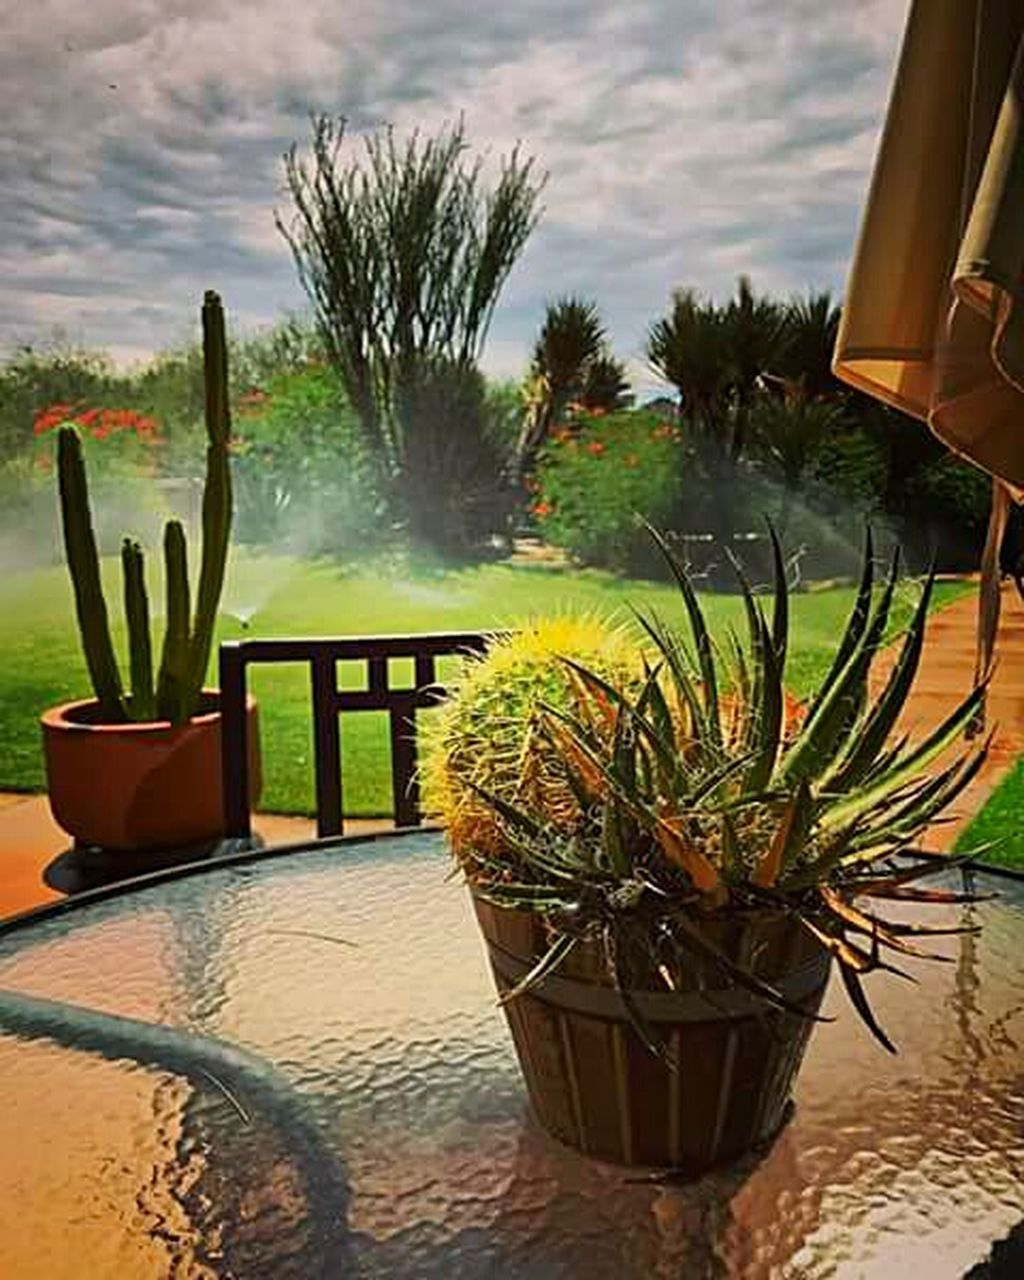 potted plant, day, no people, cactus, nature, plant, outdoors, water, sky